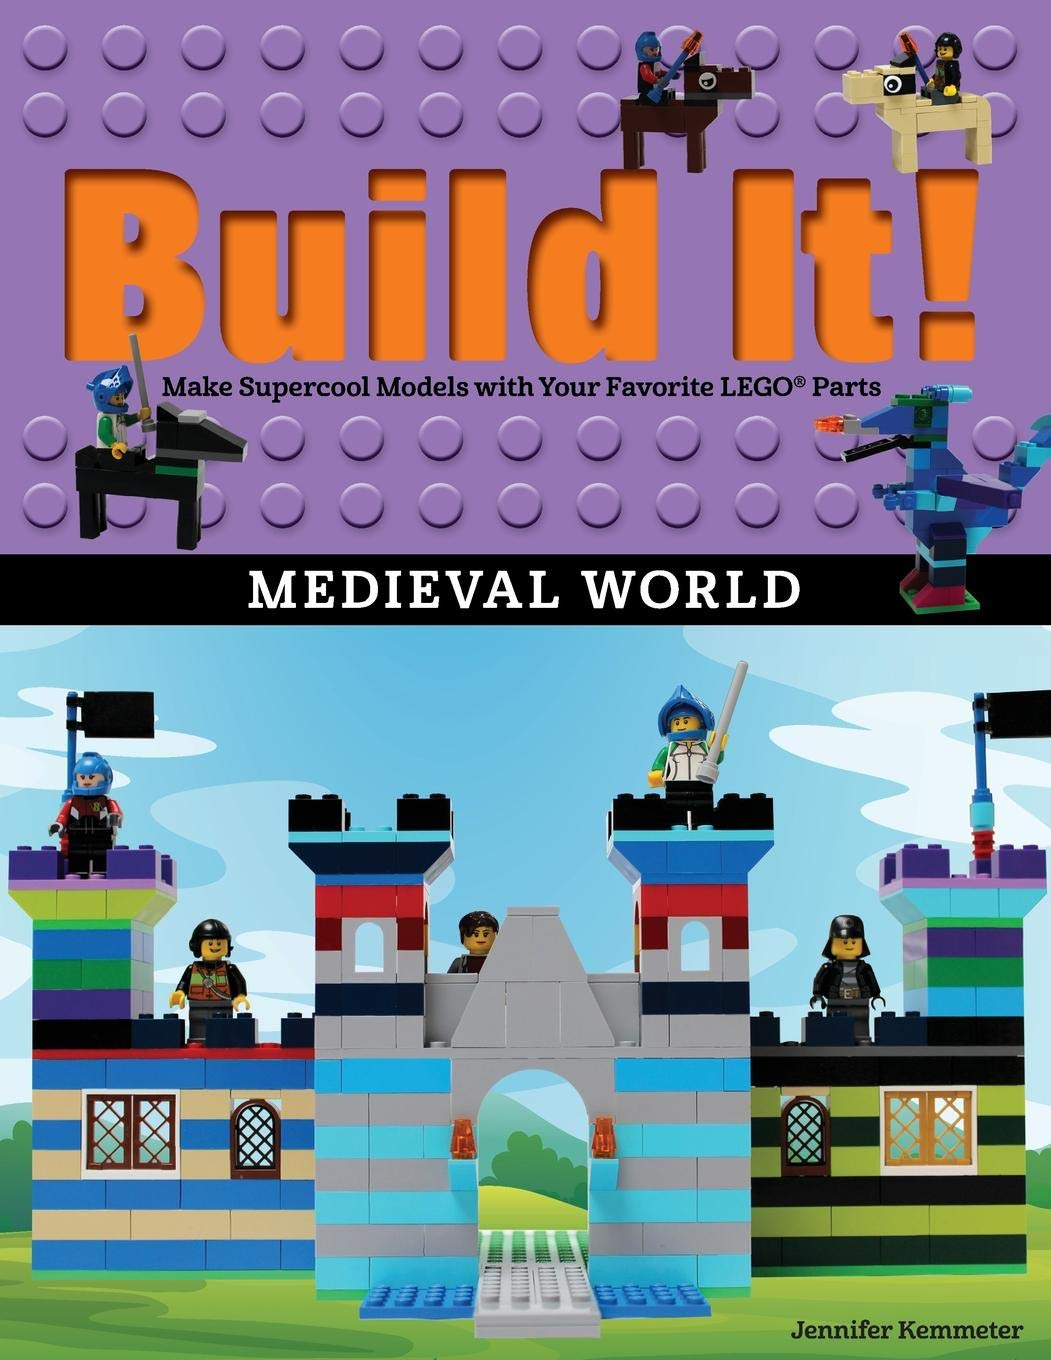 Build It  Medieval World  Make Supercool Models With Your Favorite Legoa Parts  Brick Books